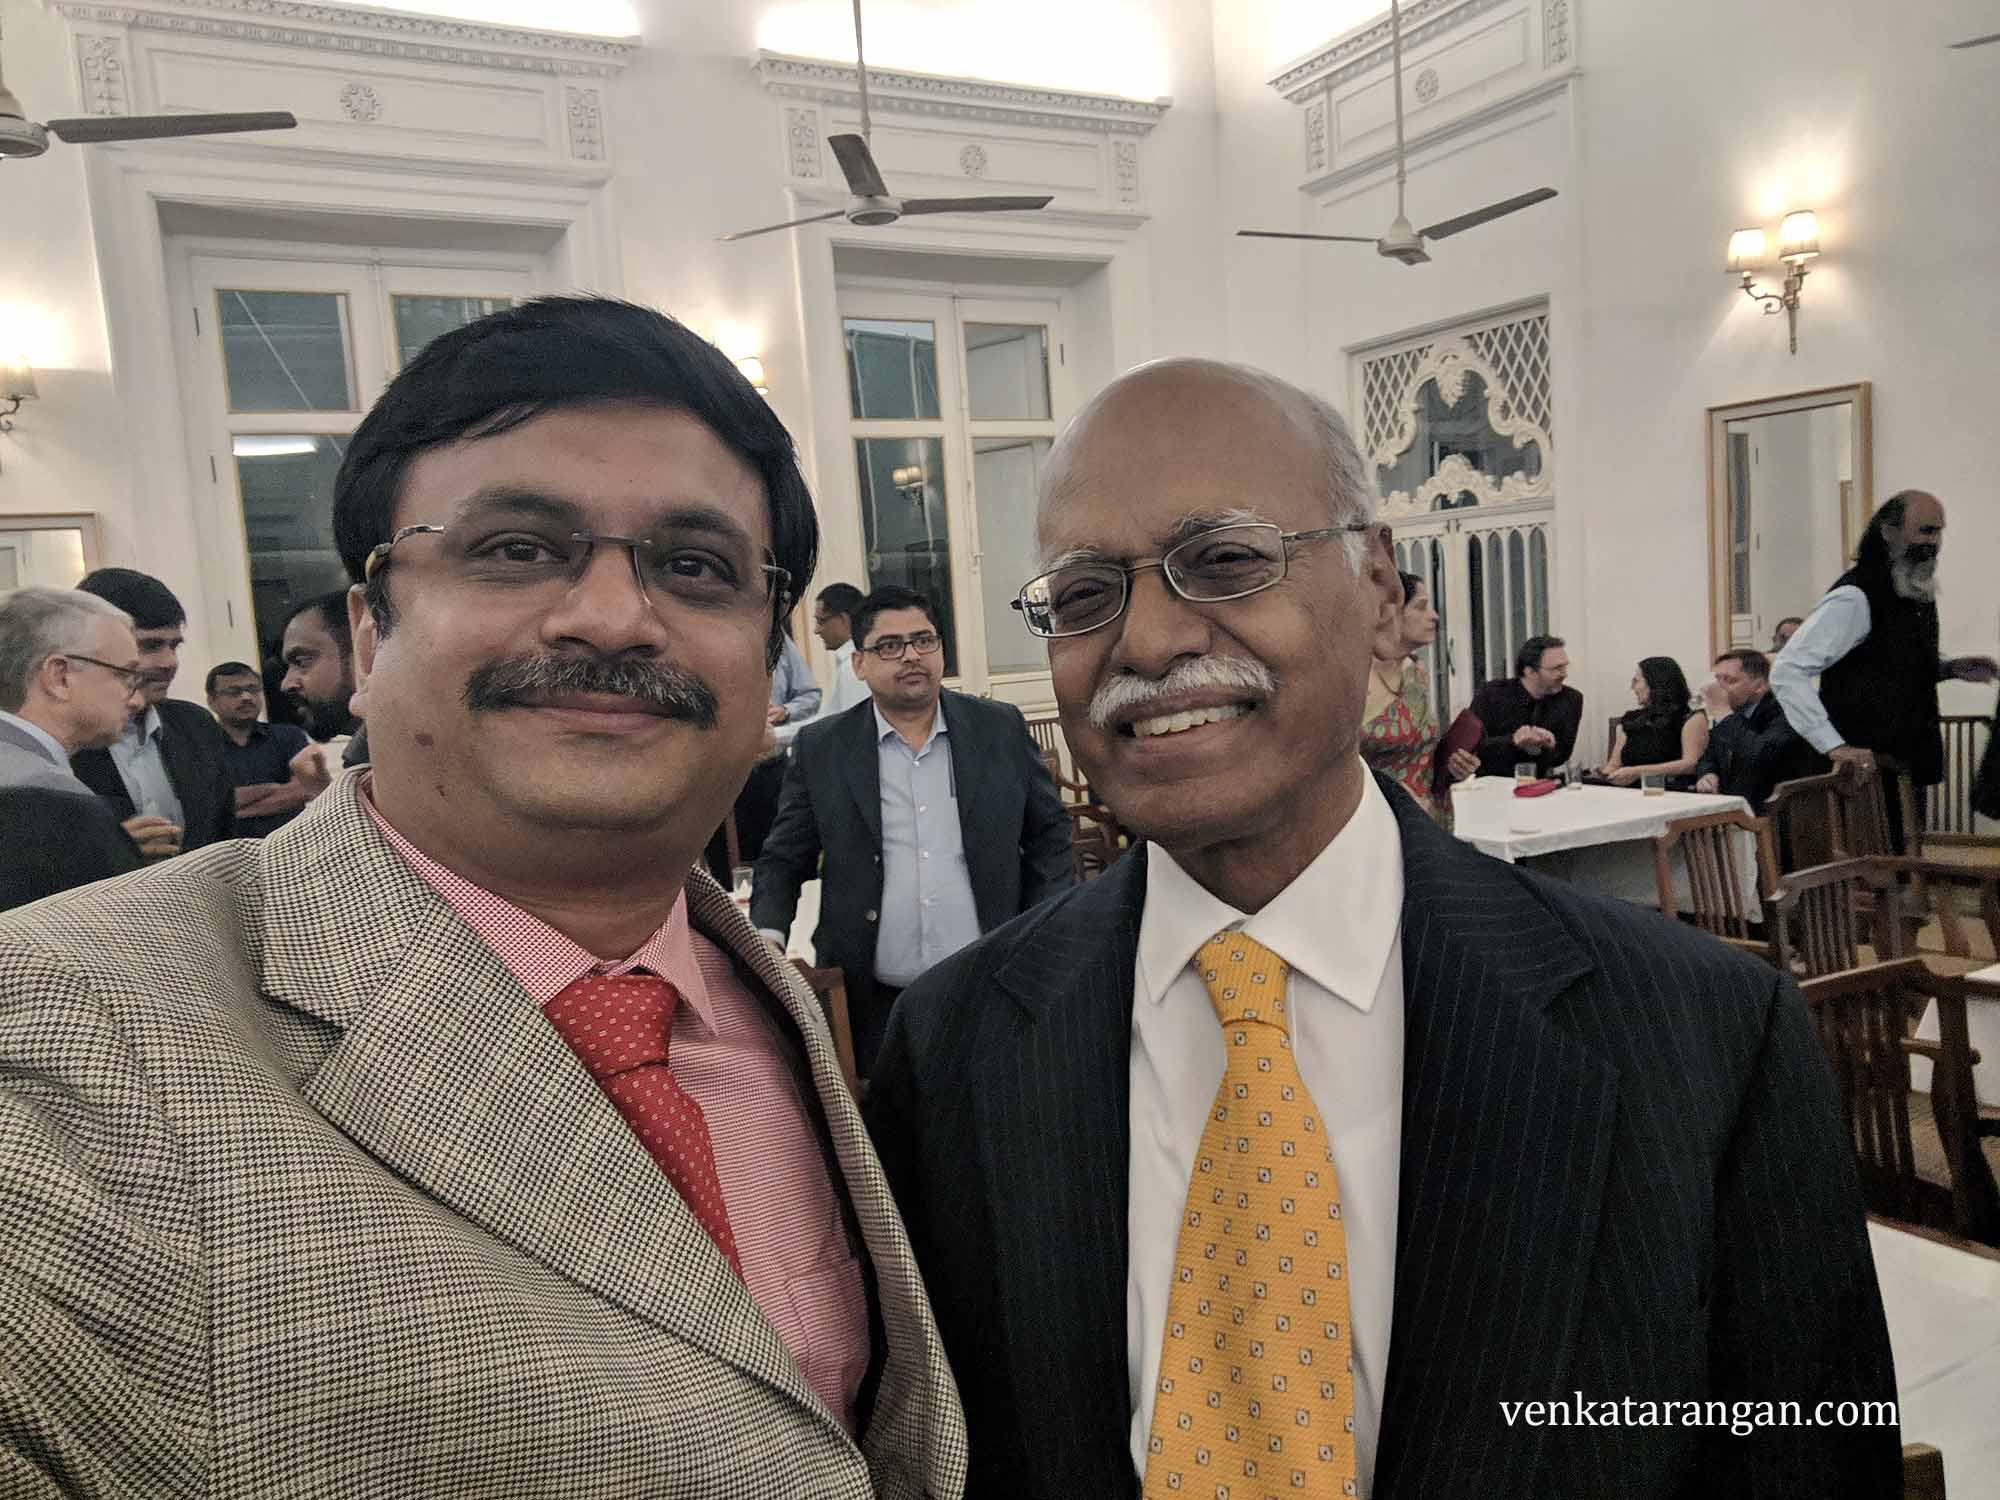 Mr Krishnan Ramasamy (Chemical Industry Veteran, Tamil Researcher and Former SPIC Executive)